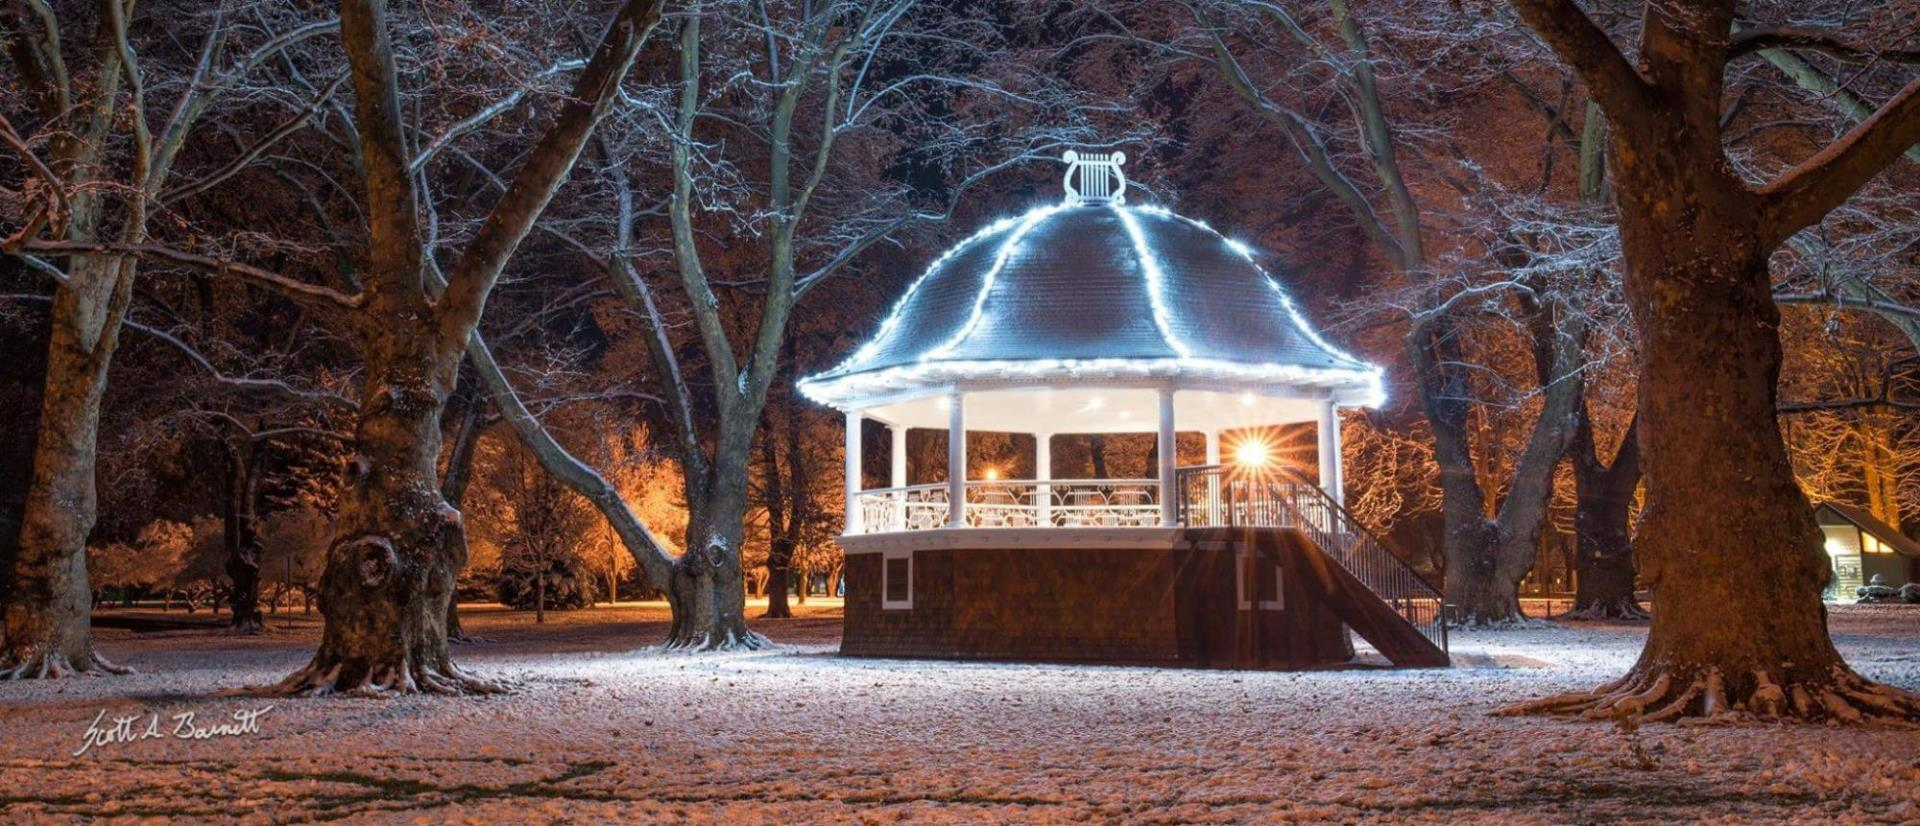 lit up gazebo